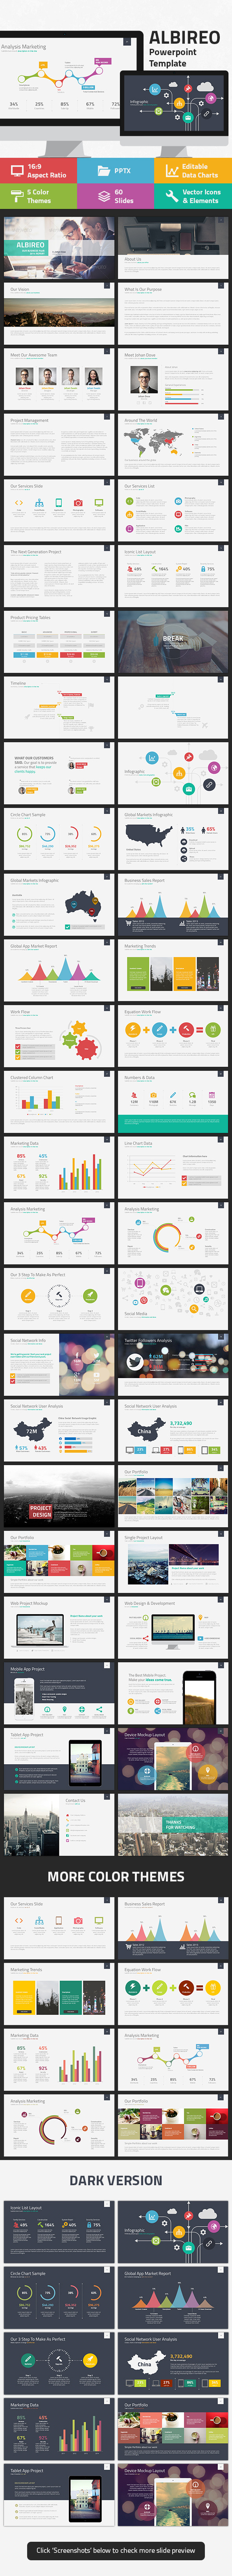 Albireo Powerpoint Template - Business PowerPoint Templates